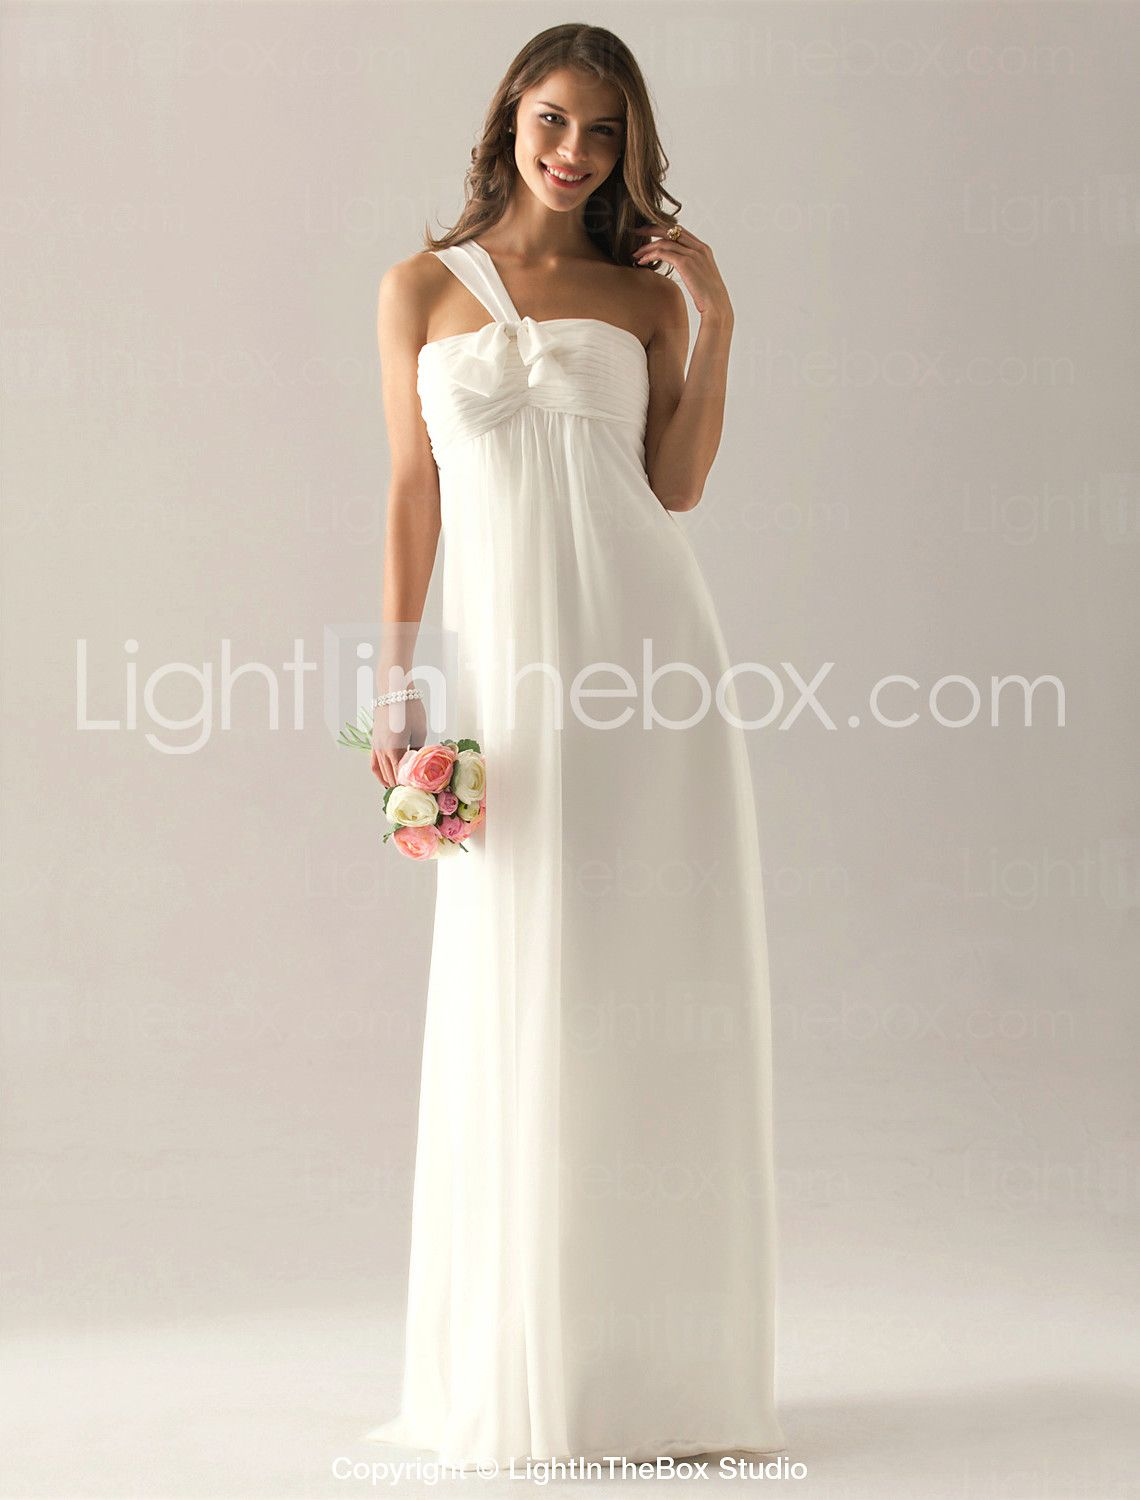 Sheath column one shoulder floor length chiffon bridesmaid dress